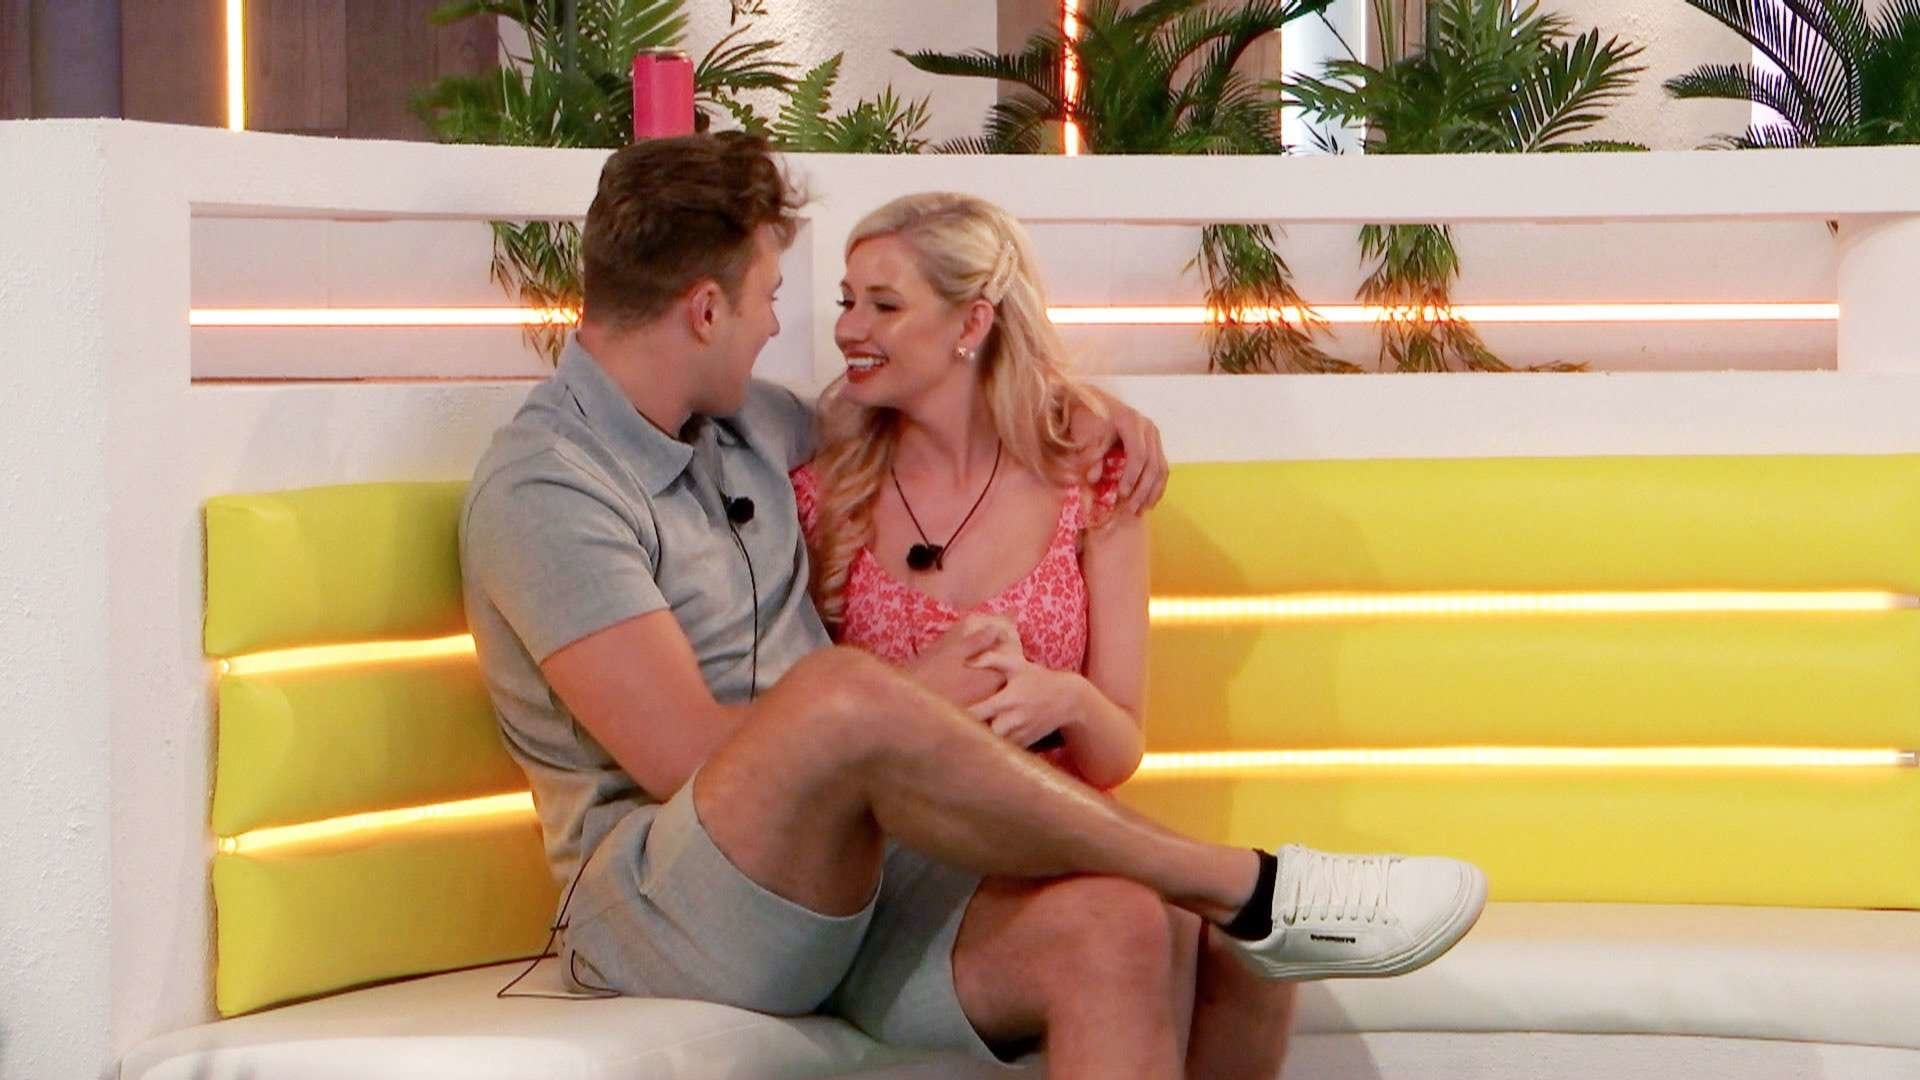 'Love Island 2019' Season 5 Episode 23 is scheduled to be released on 25 June 2019